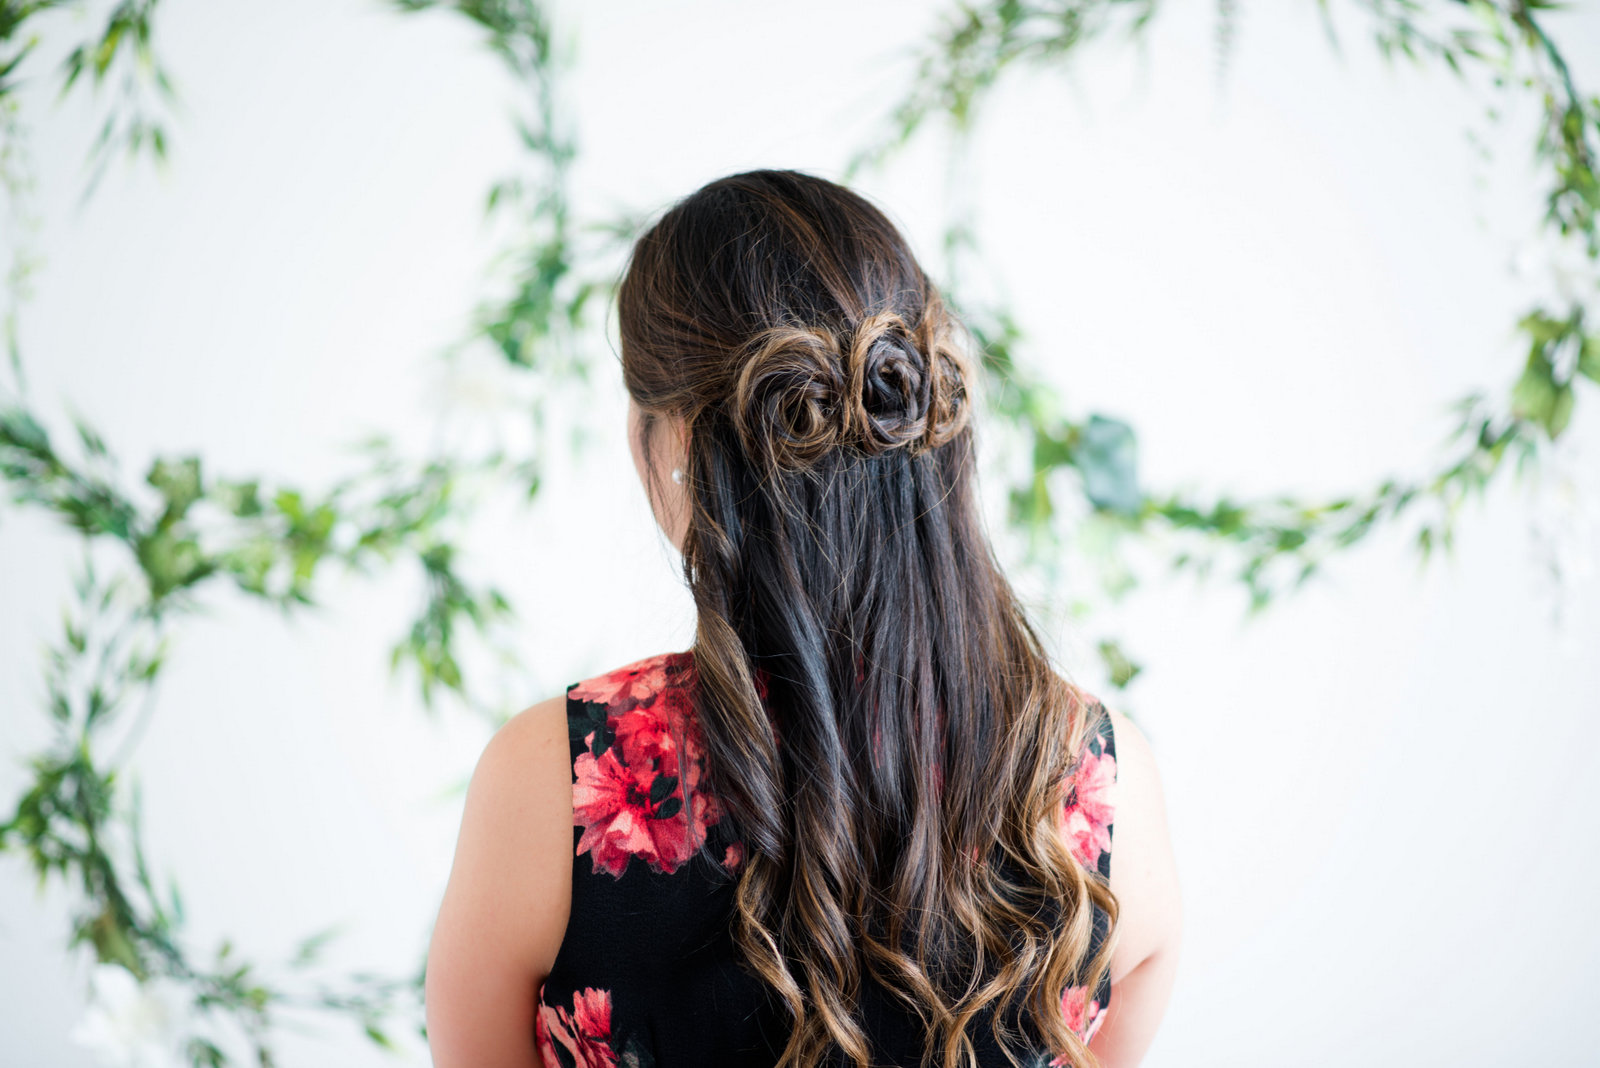 Triple rose braid